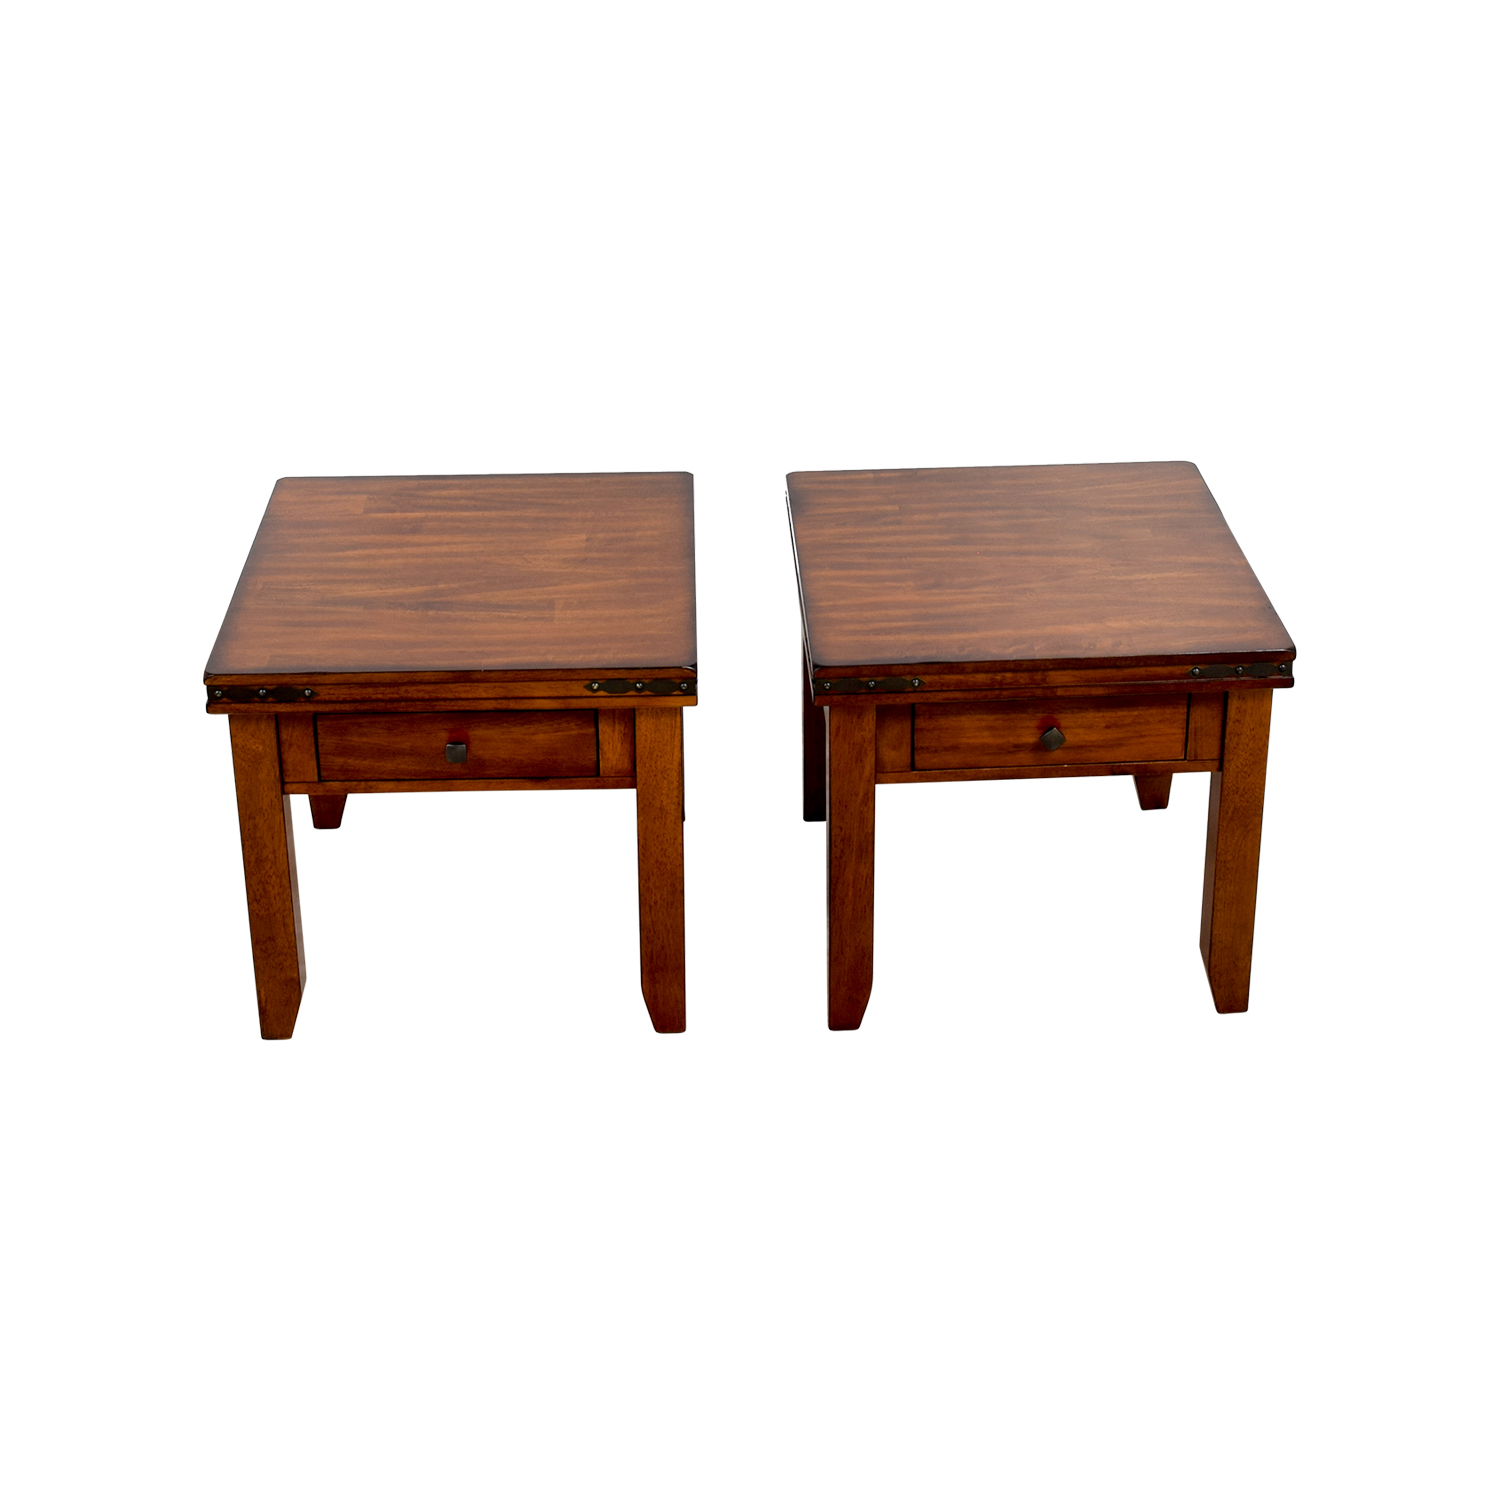 Bobs Furniture Bobs Furniture Enormous End Tables price